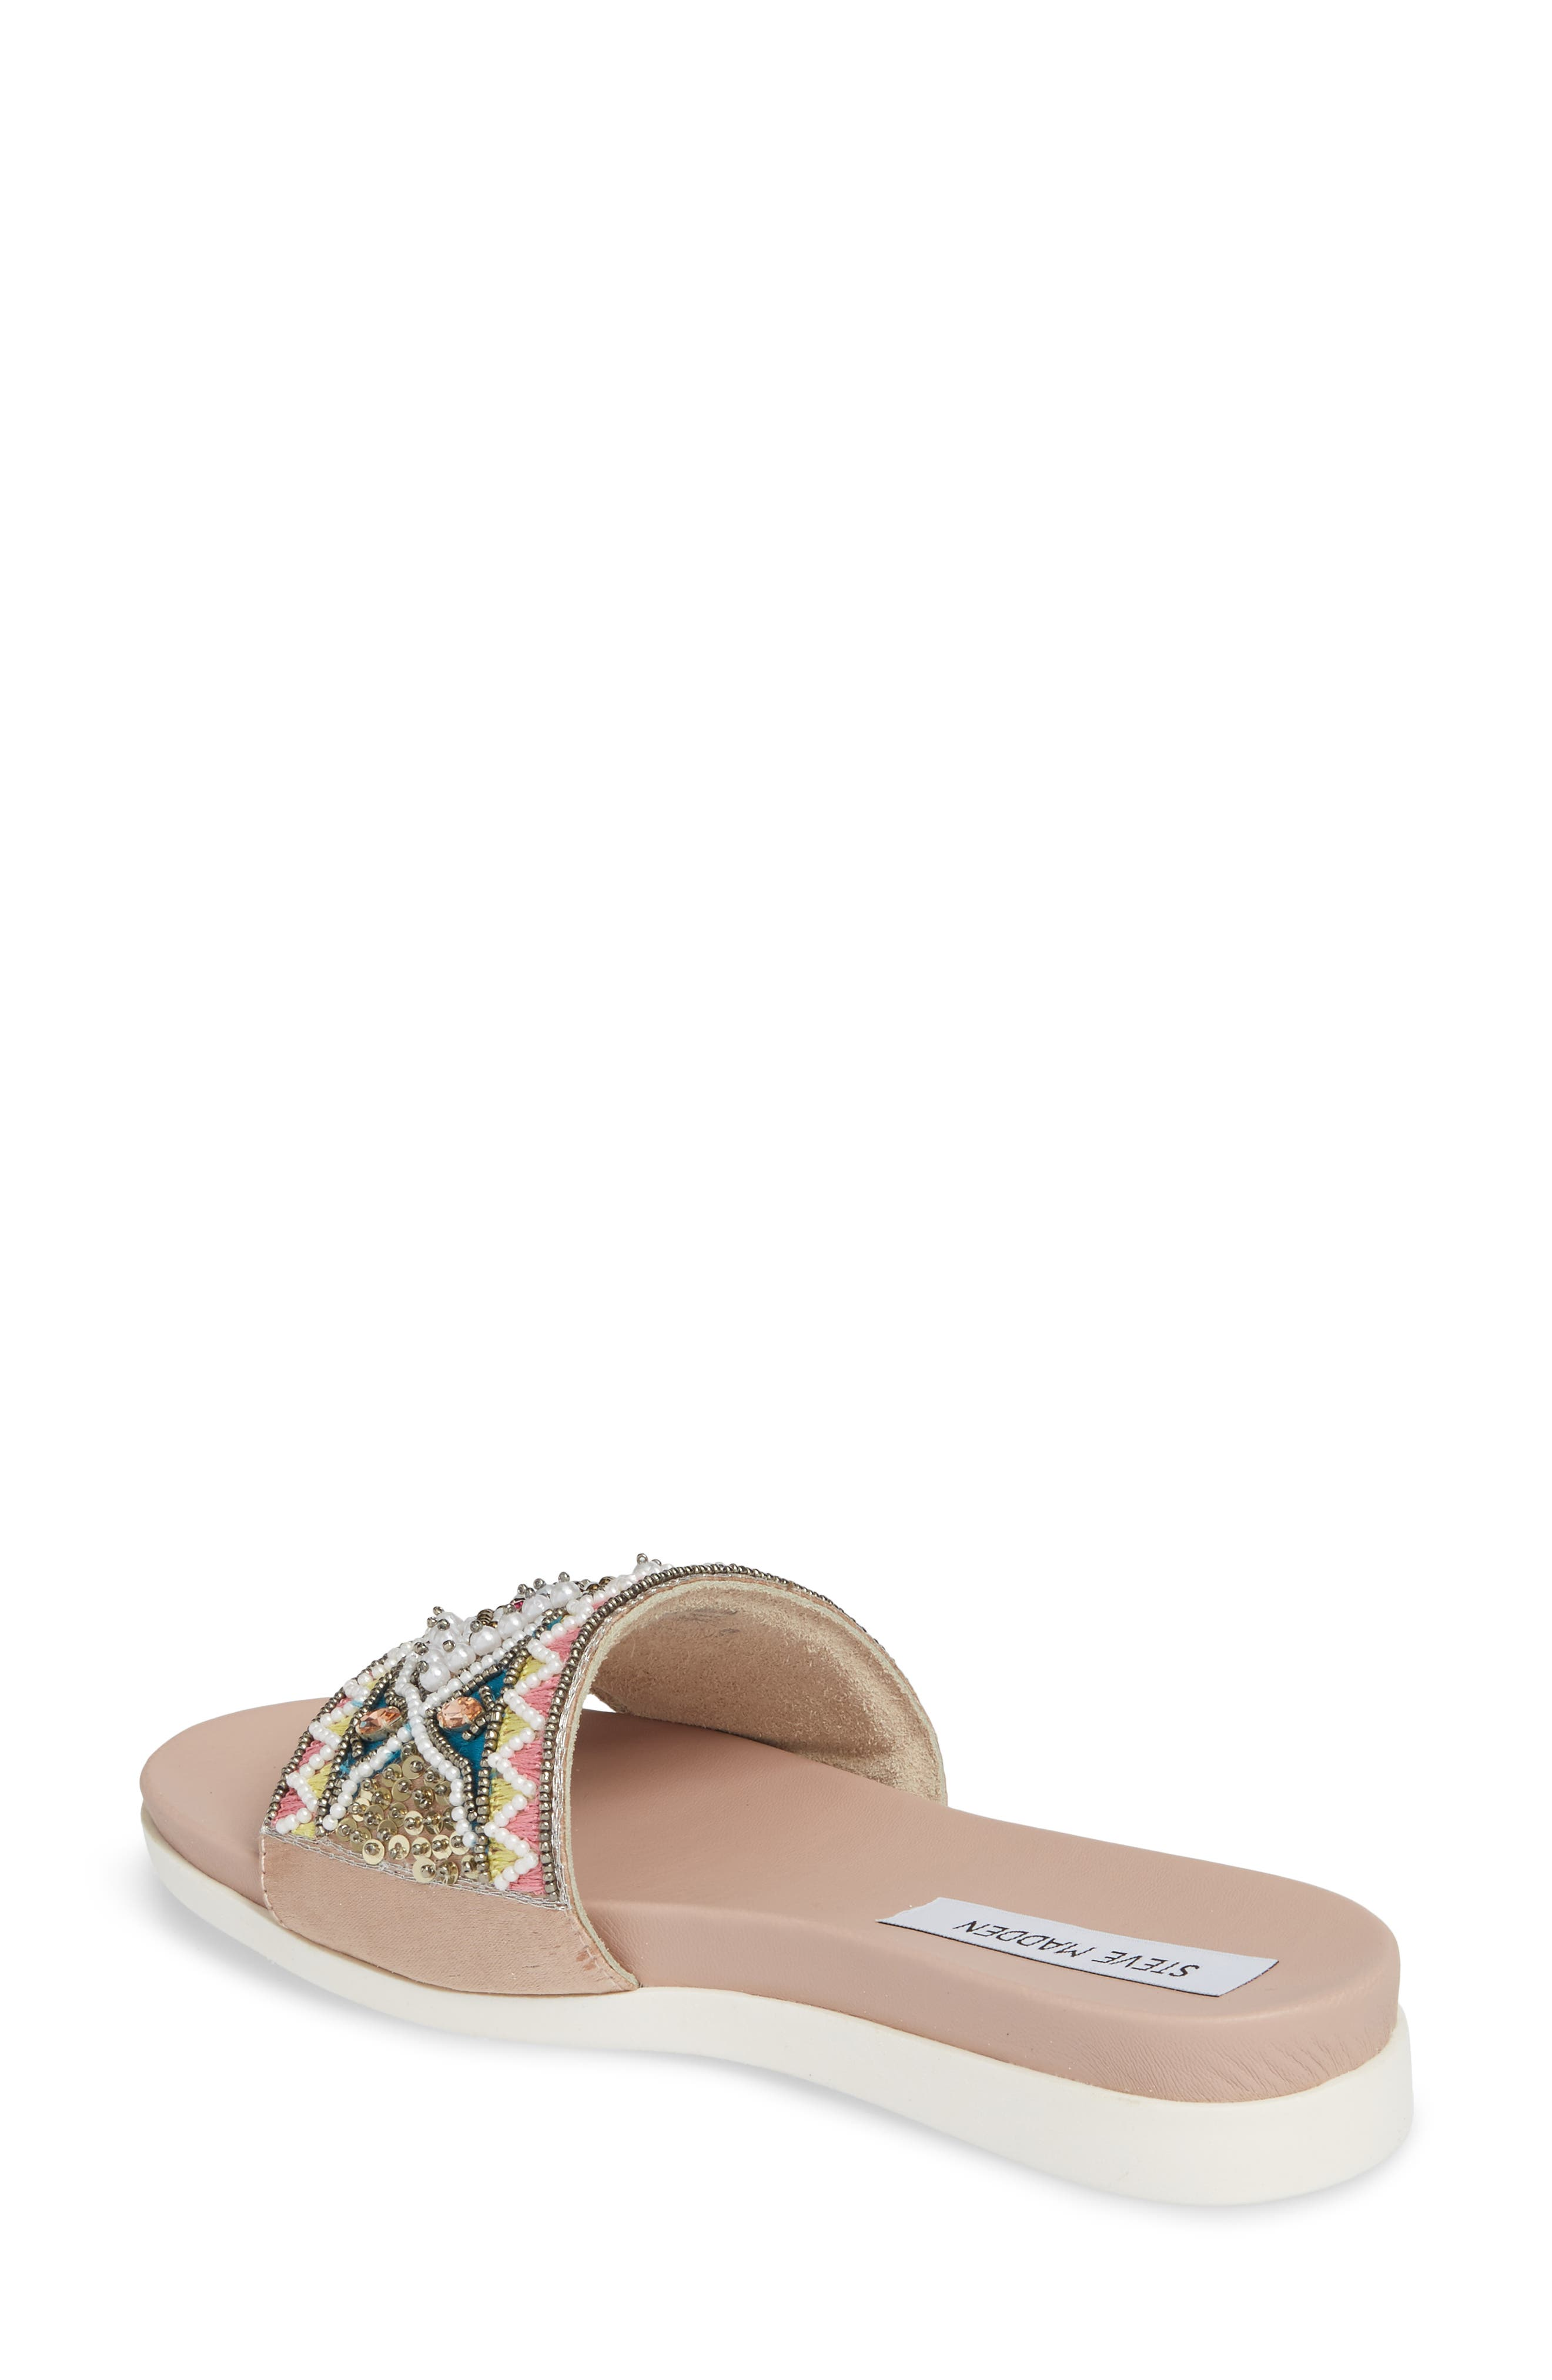 Thalia Beaded Slide Sandal,                             Alternate thumbnail 2, color,                             400